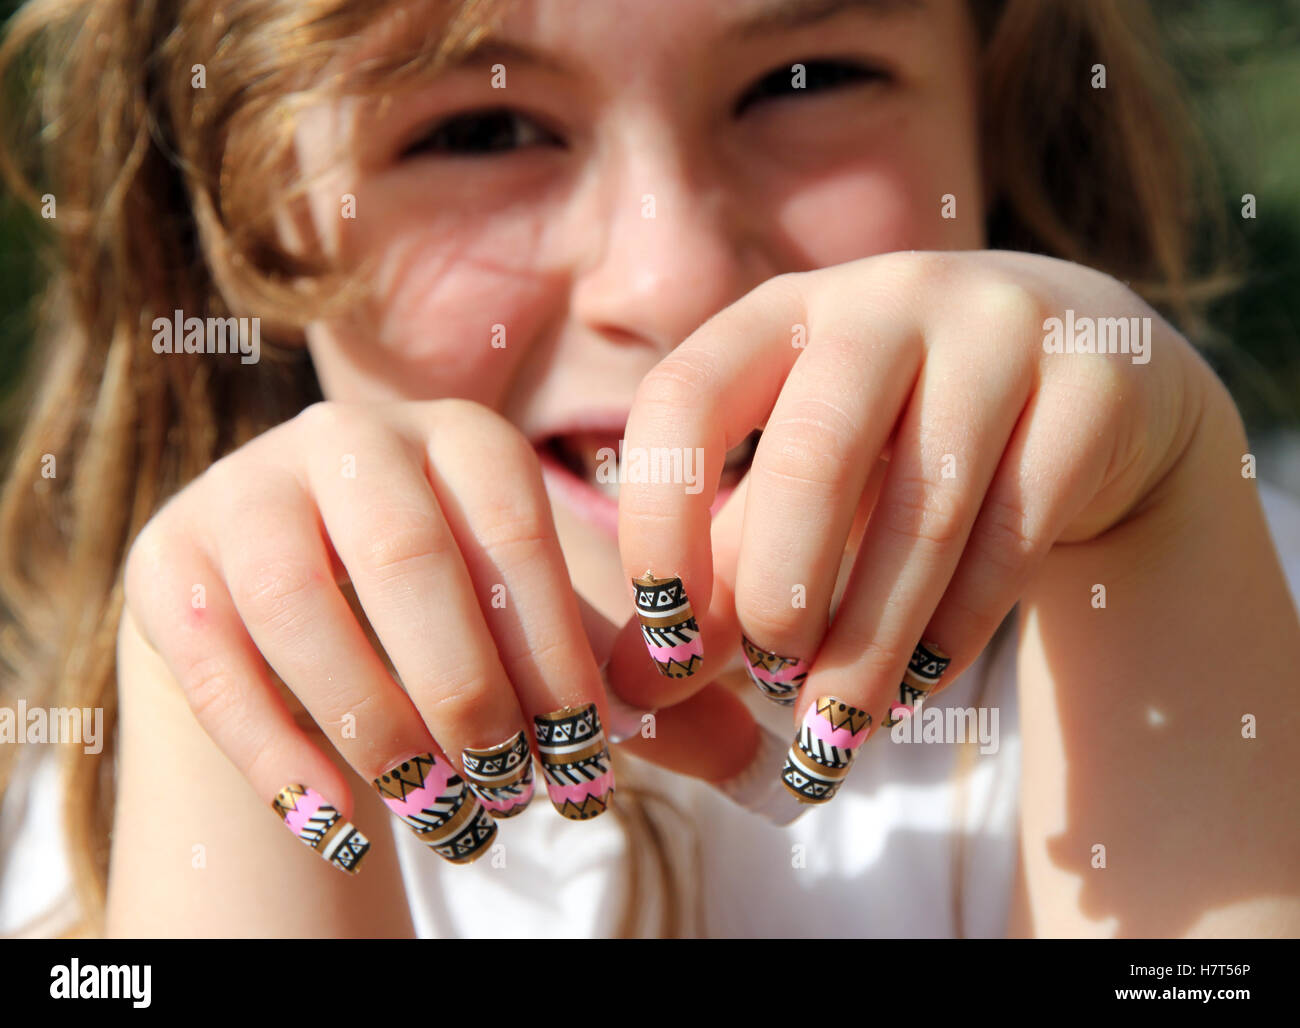 fake nails on young girl\'s fingers Stock Photo: 125306126 - Alamy